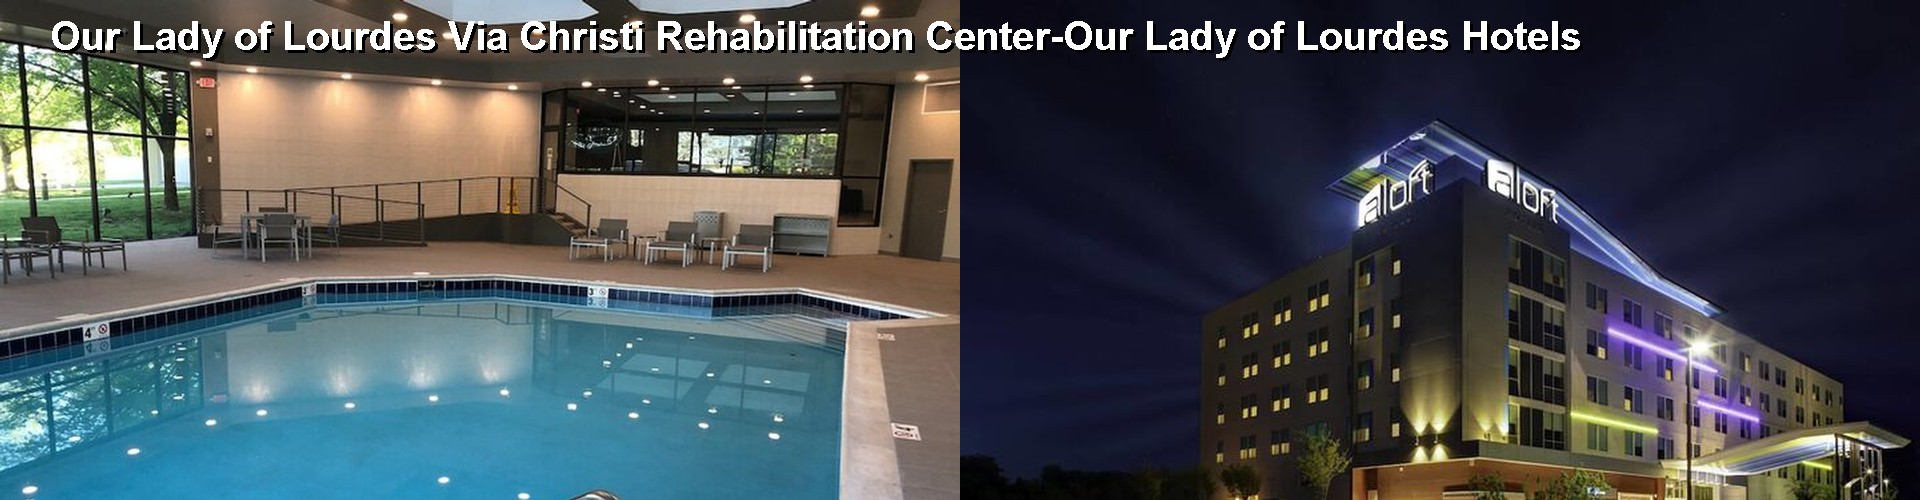 5 Best Hotels near Our Lady of Lourdes Via Christi Rehabilitation Center-Our Lady of Lourdes